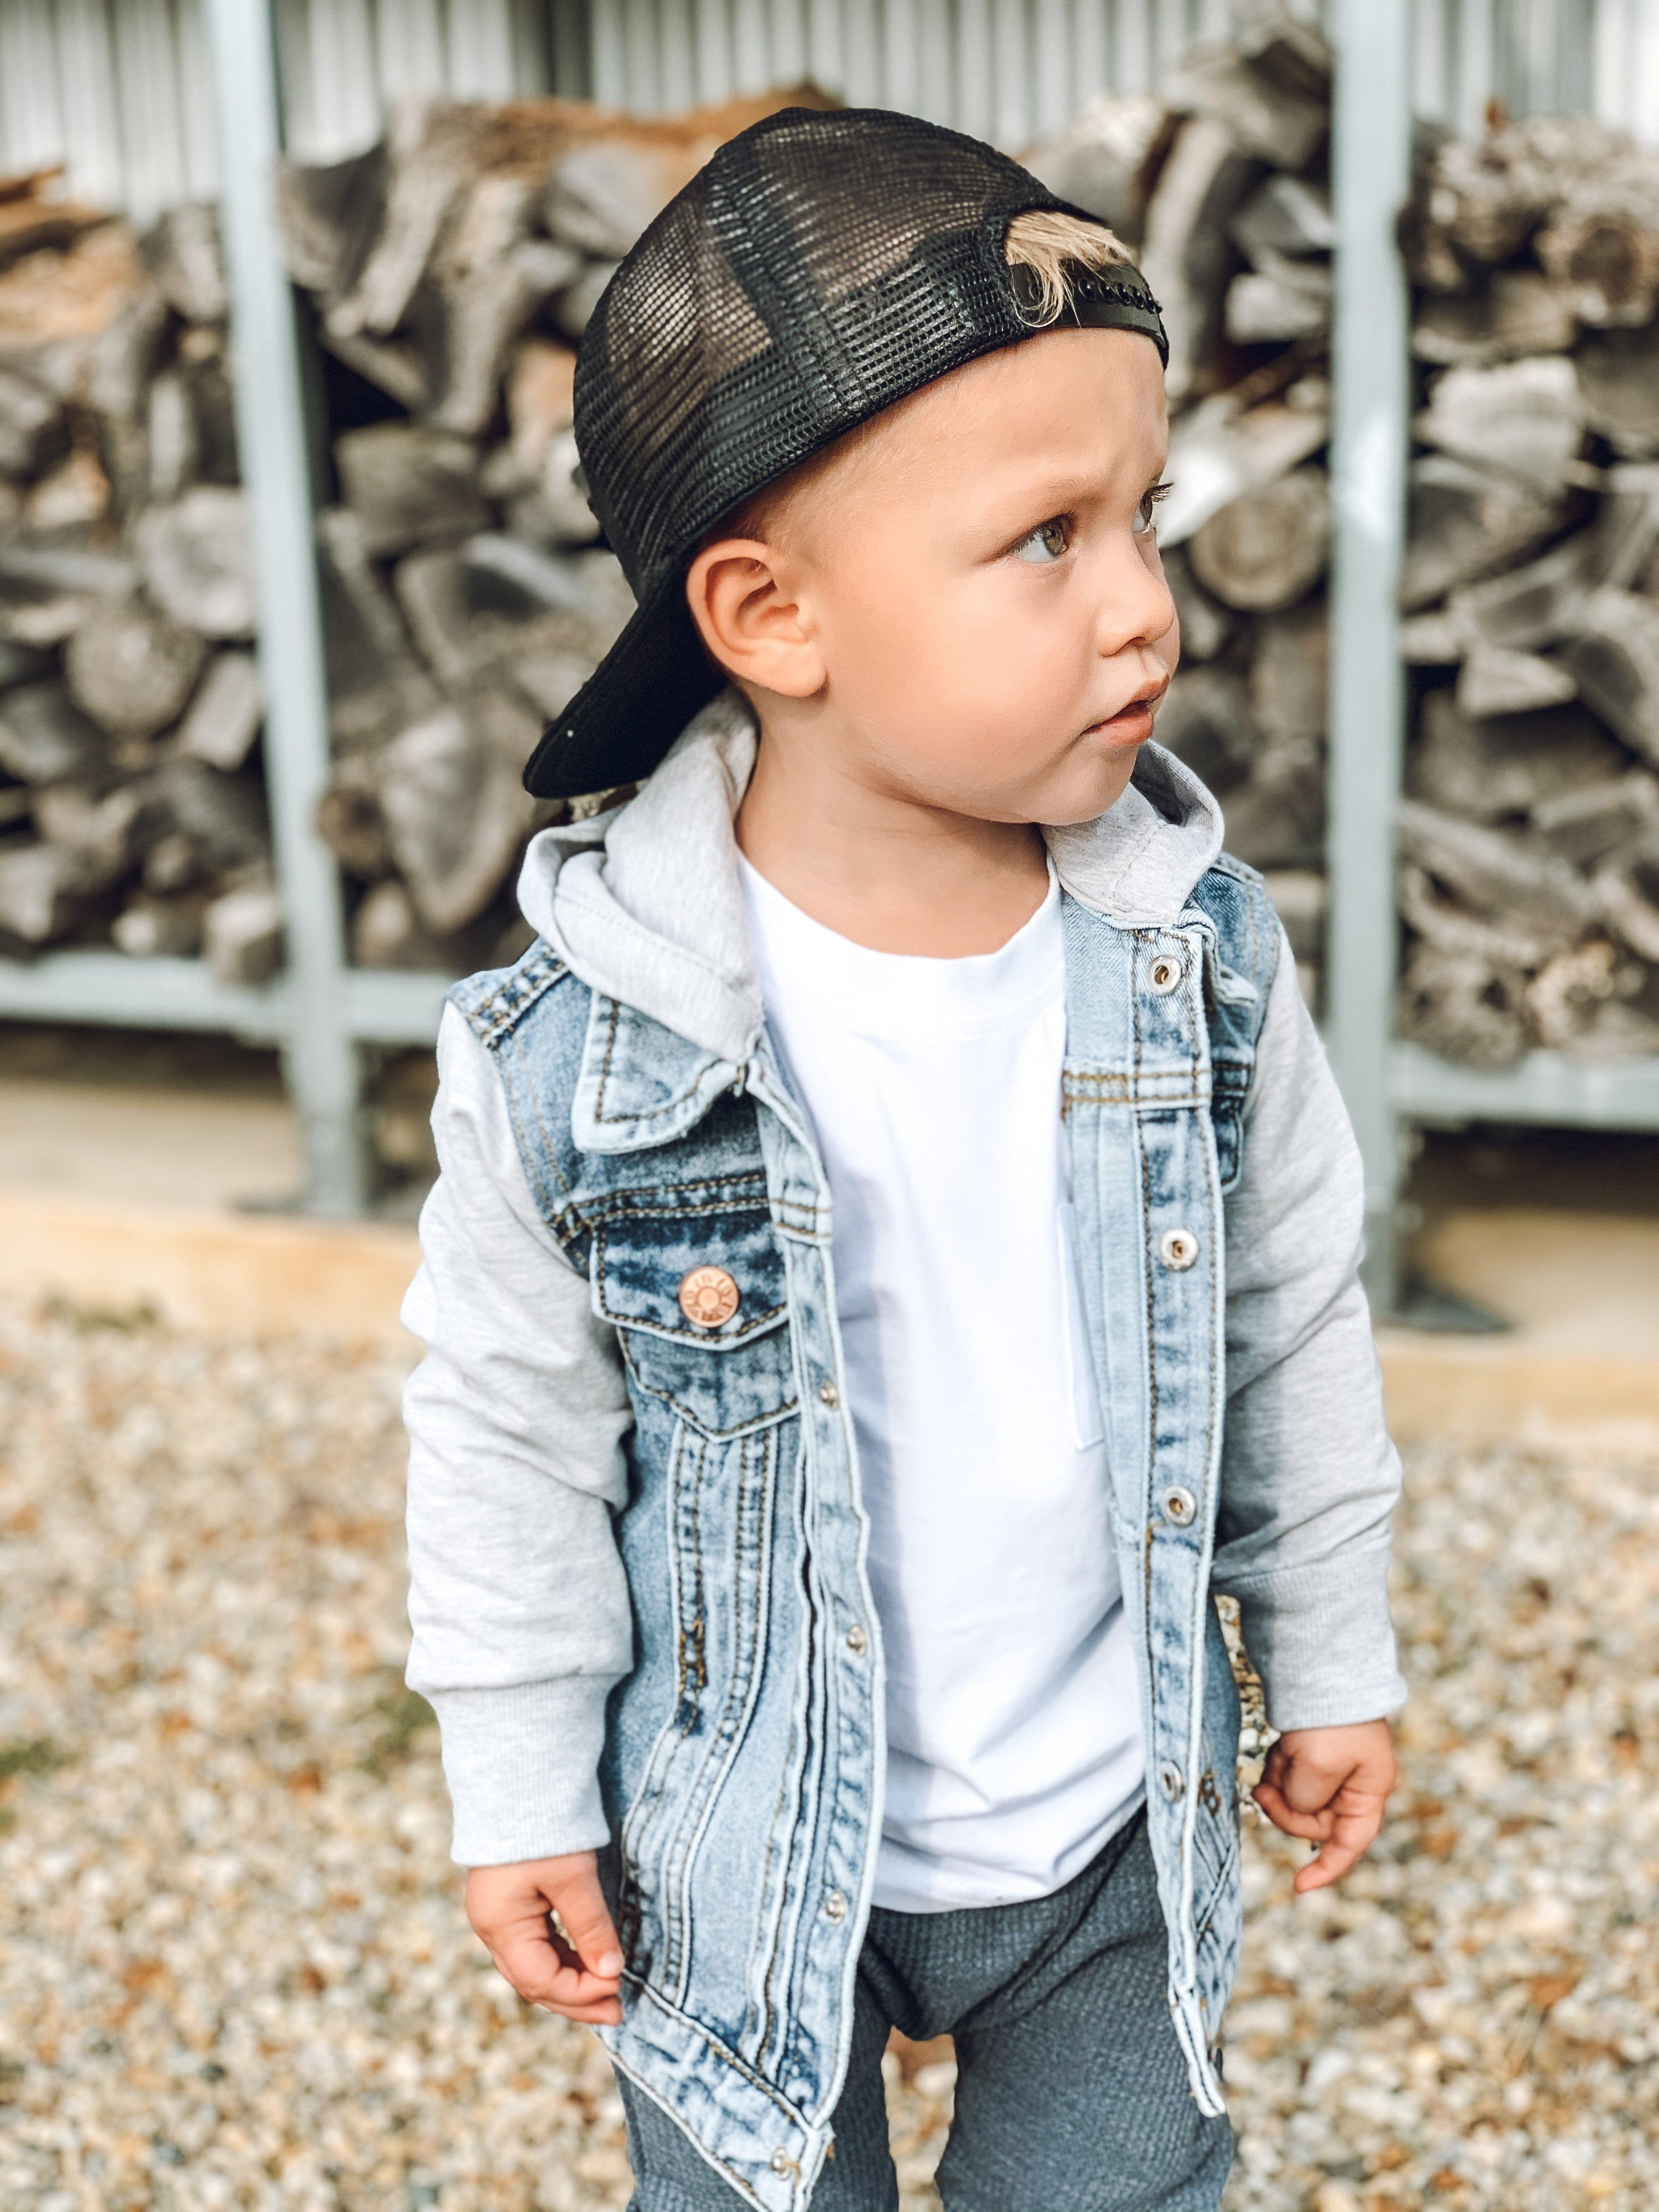 Hooded Denim Jacket Grey In 2021 Trendy Baby Boy Clothes Cute Baby Boy Outfits Boy Outfits [ 4032 x 3024 Pixel ]